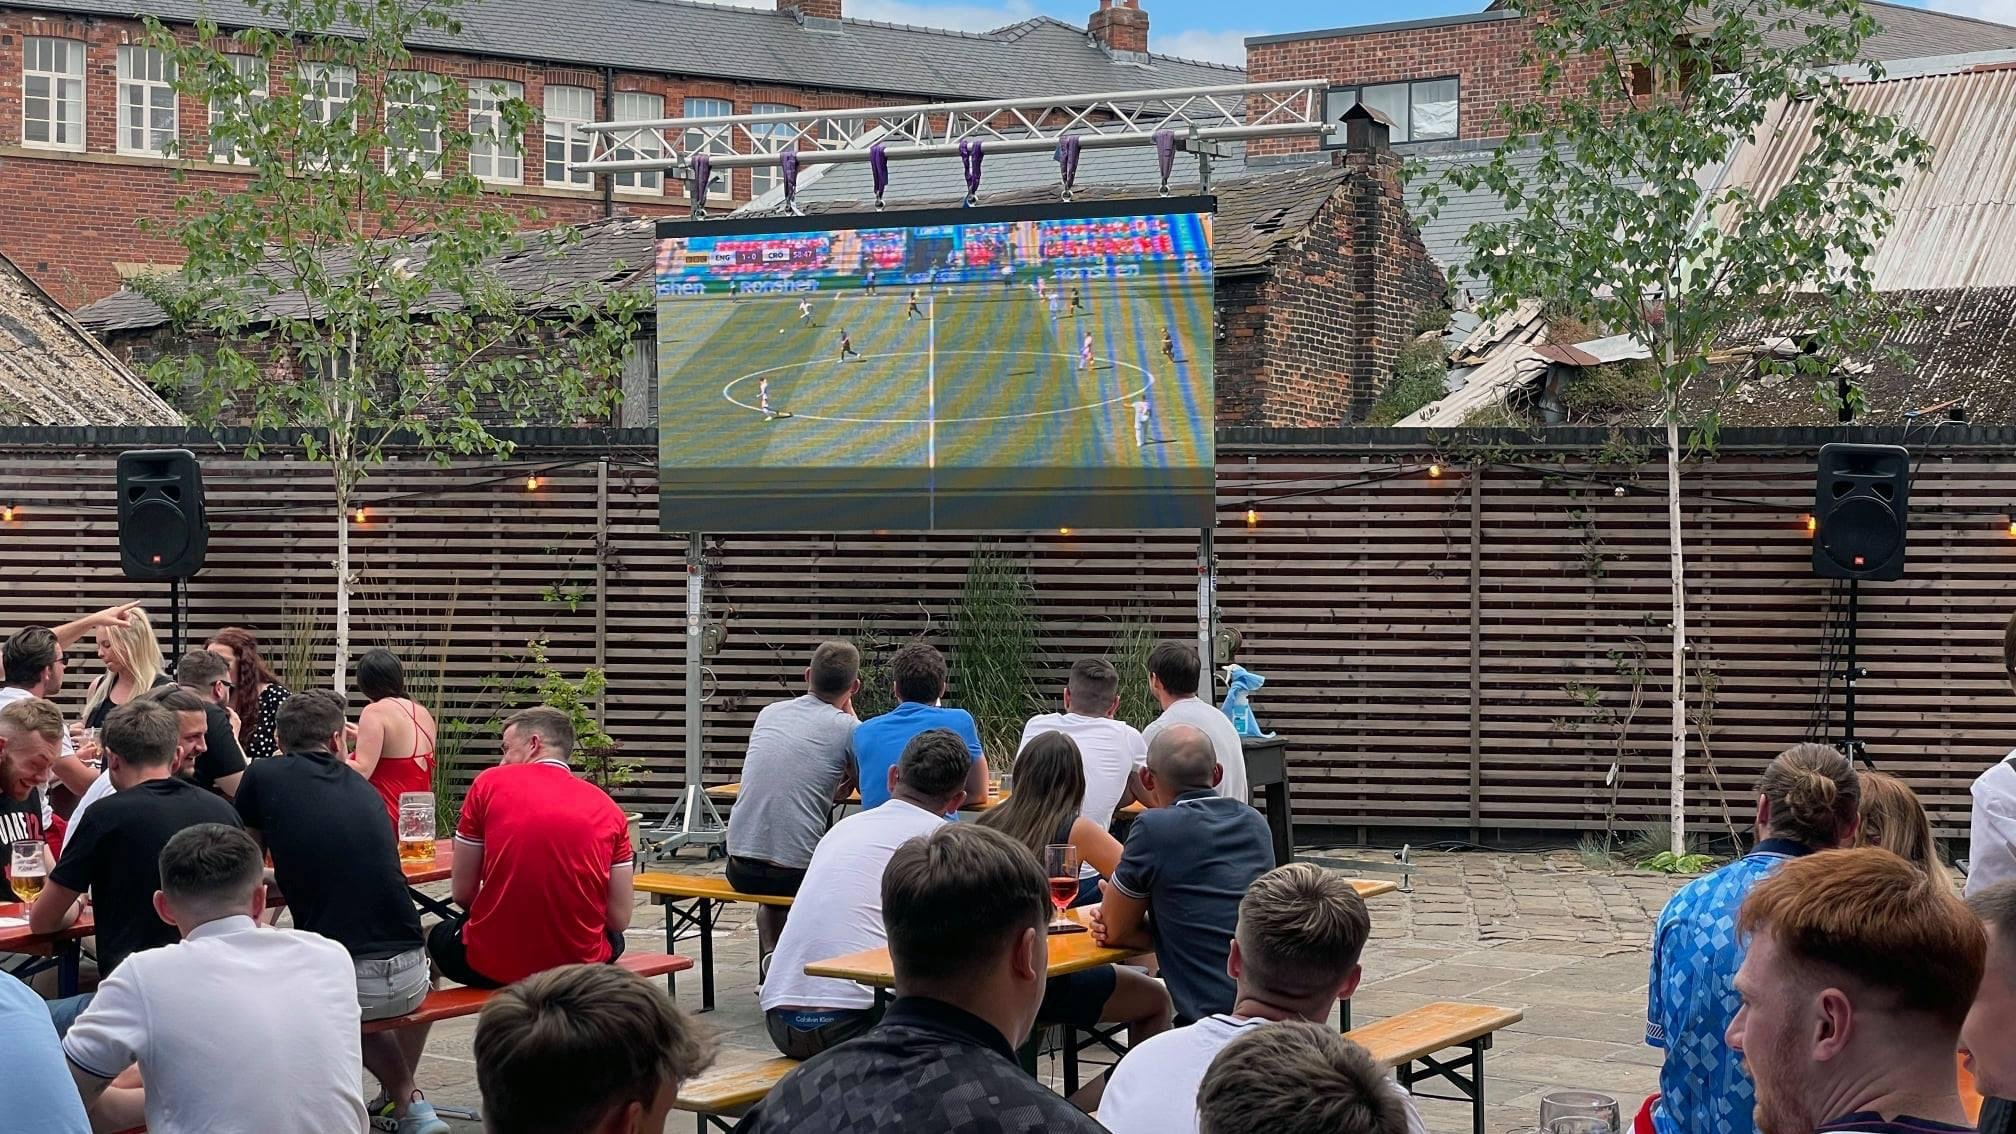 LED Screen in venue courtyard showing football